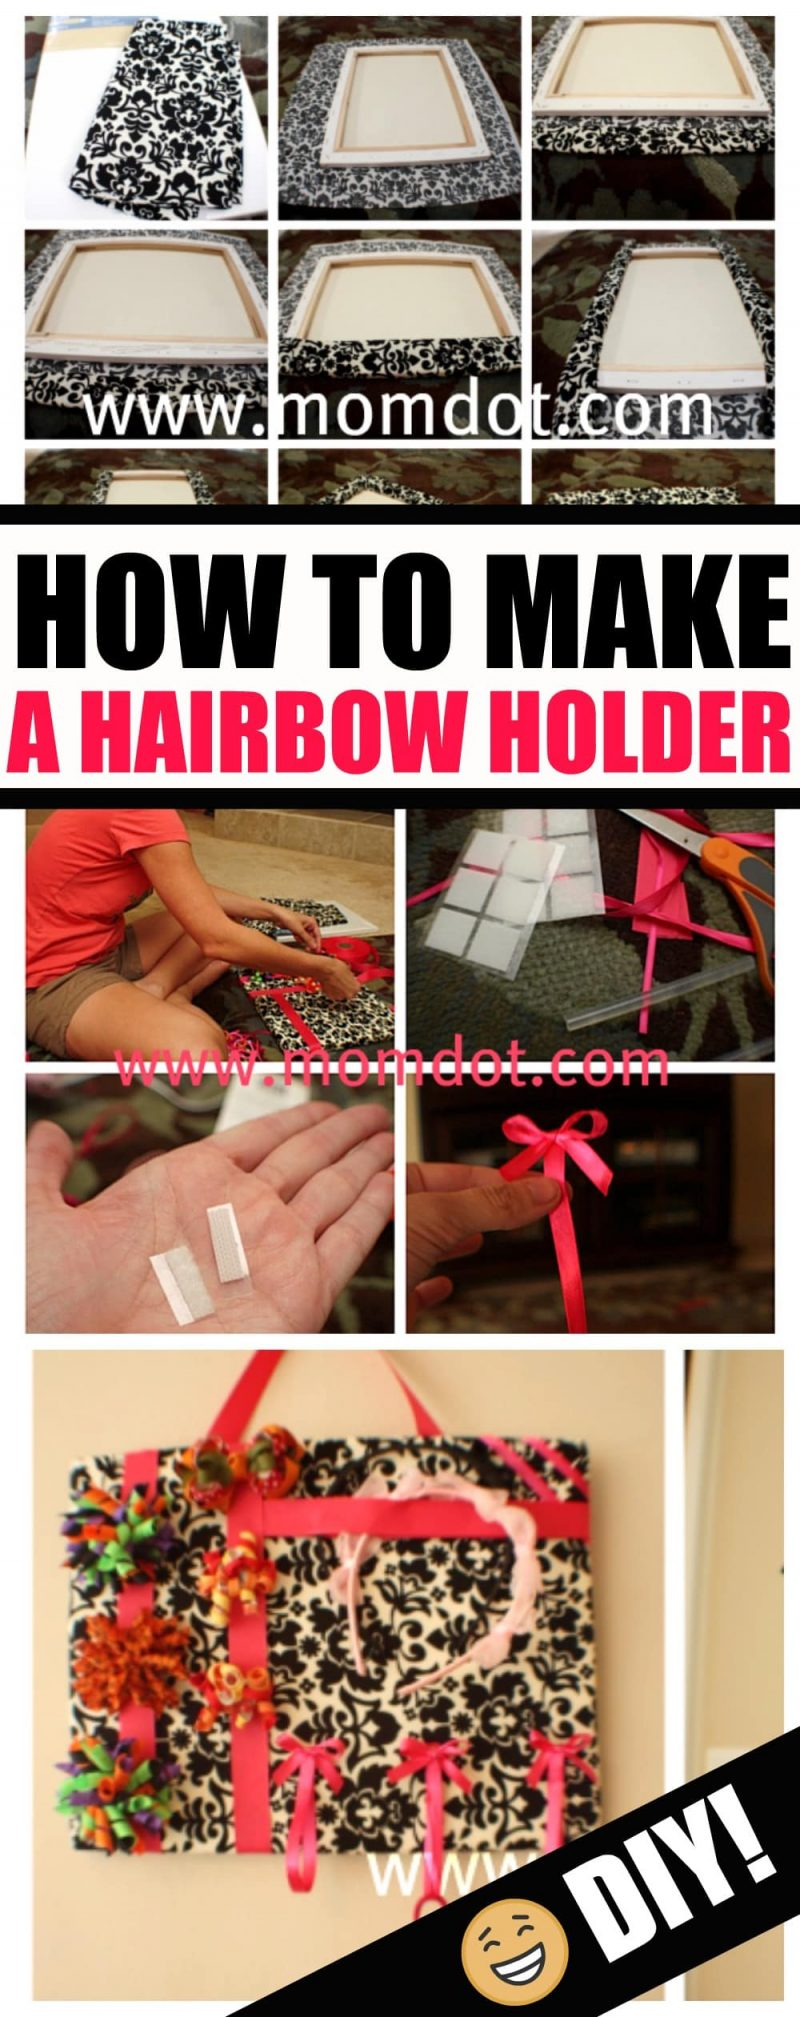 How to make a hairbow holder, hair accessory organizer DIY